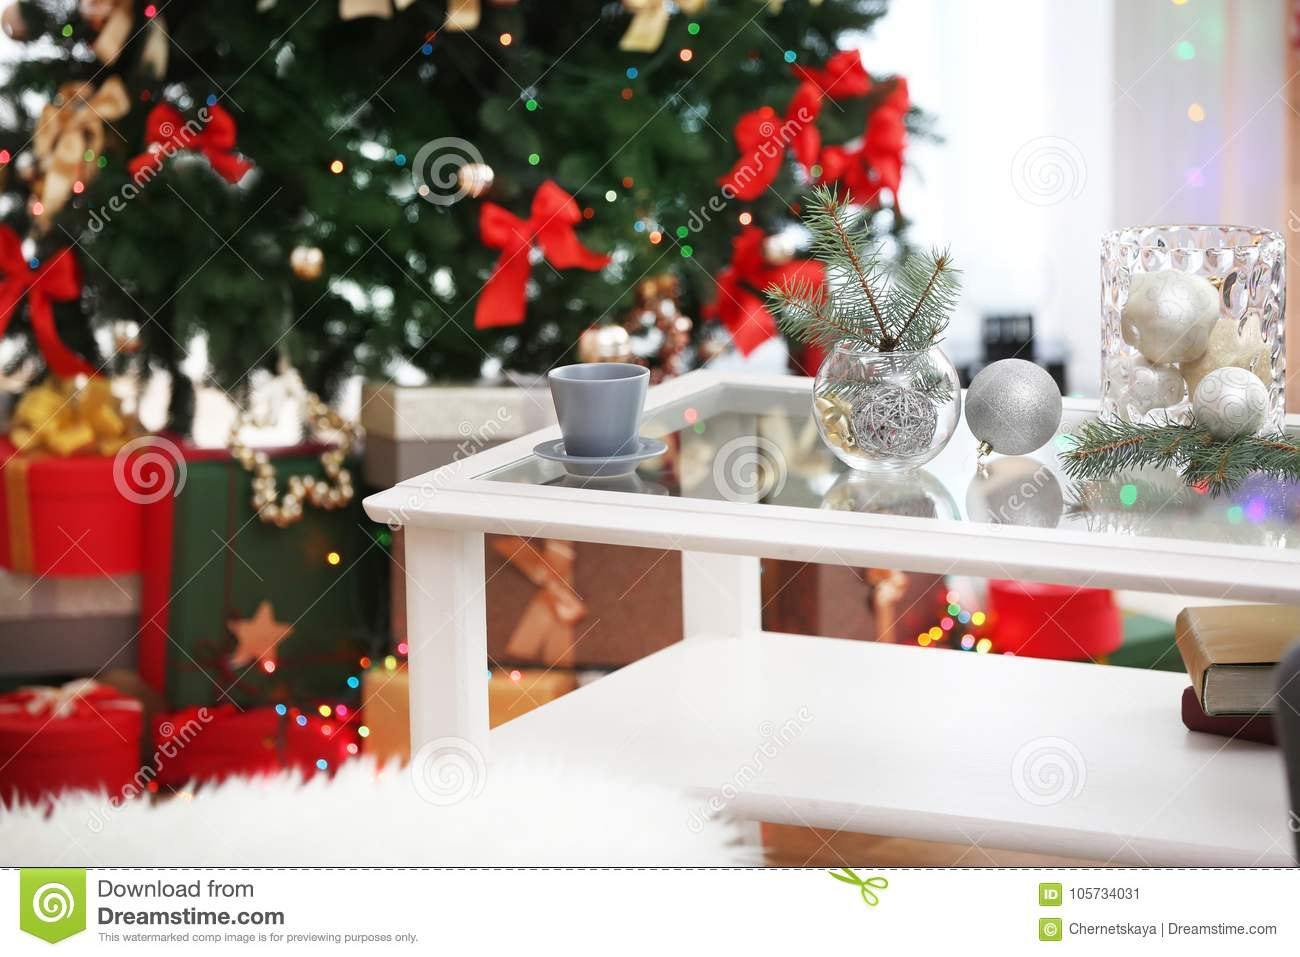 cup and glass vases with christmas decor on white table